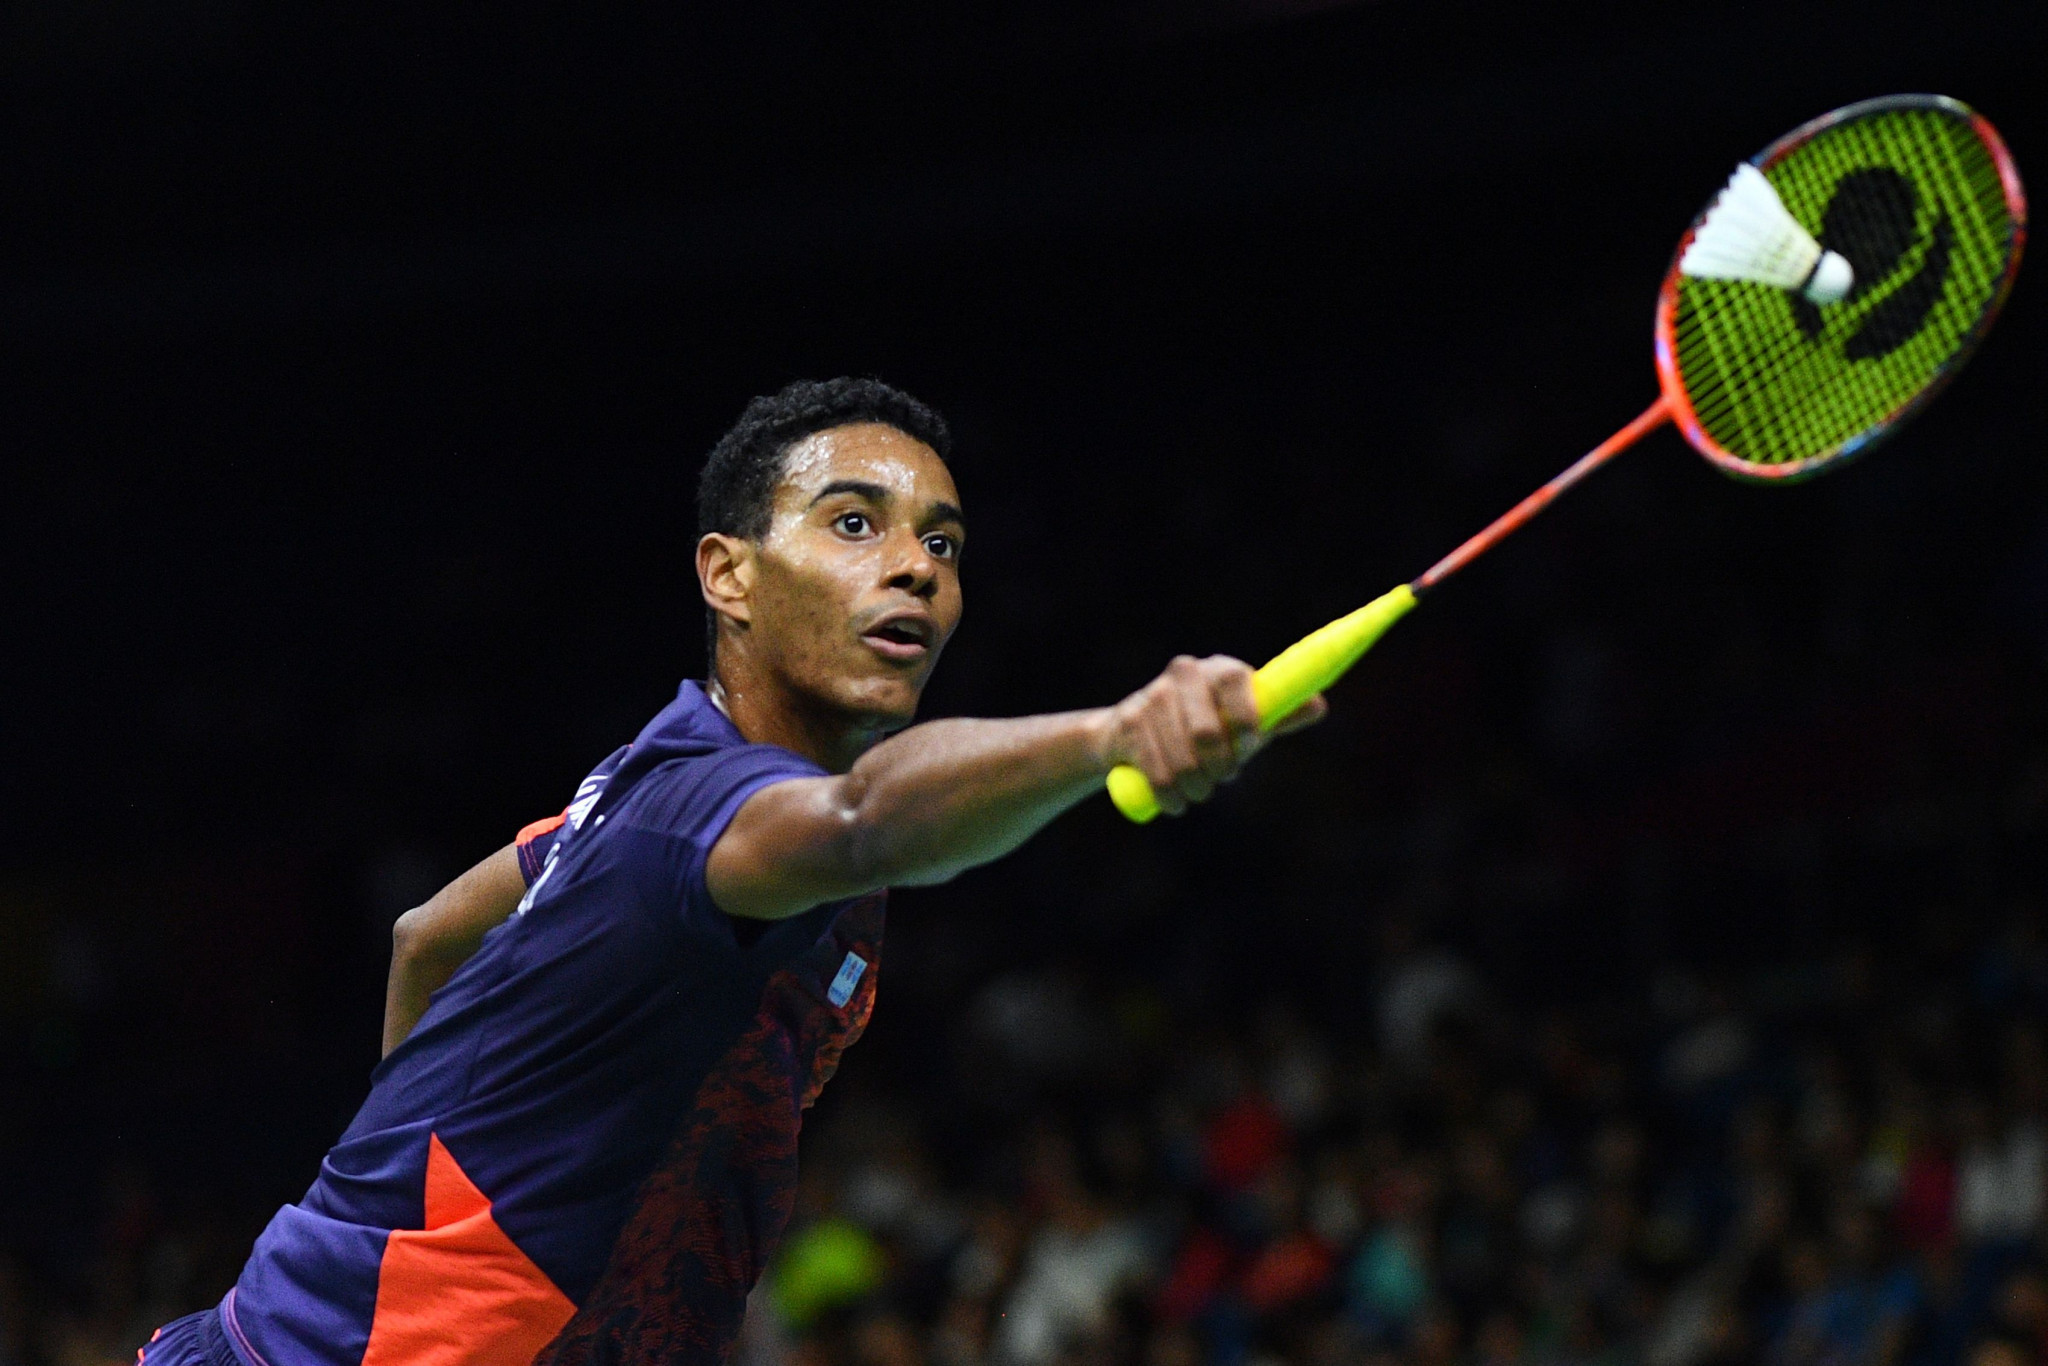 Brazil's Ygor Coelho de Oliveira won his opening game of the Pan American Badminton Championships ©Getty Images